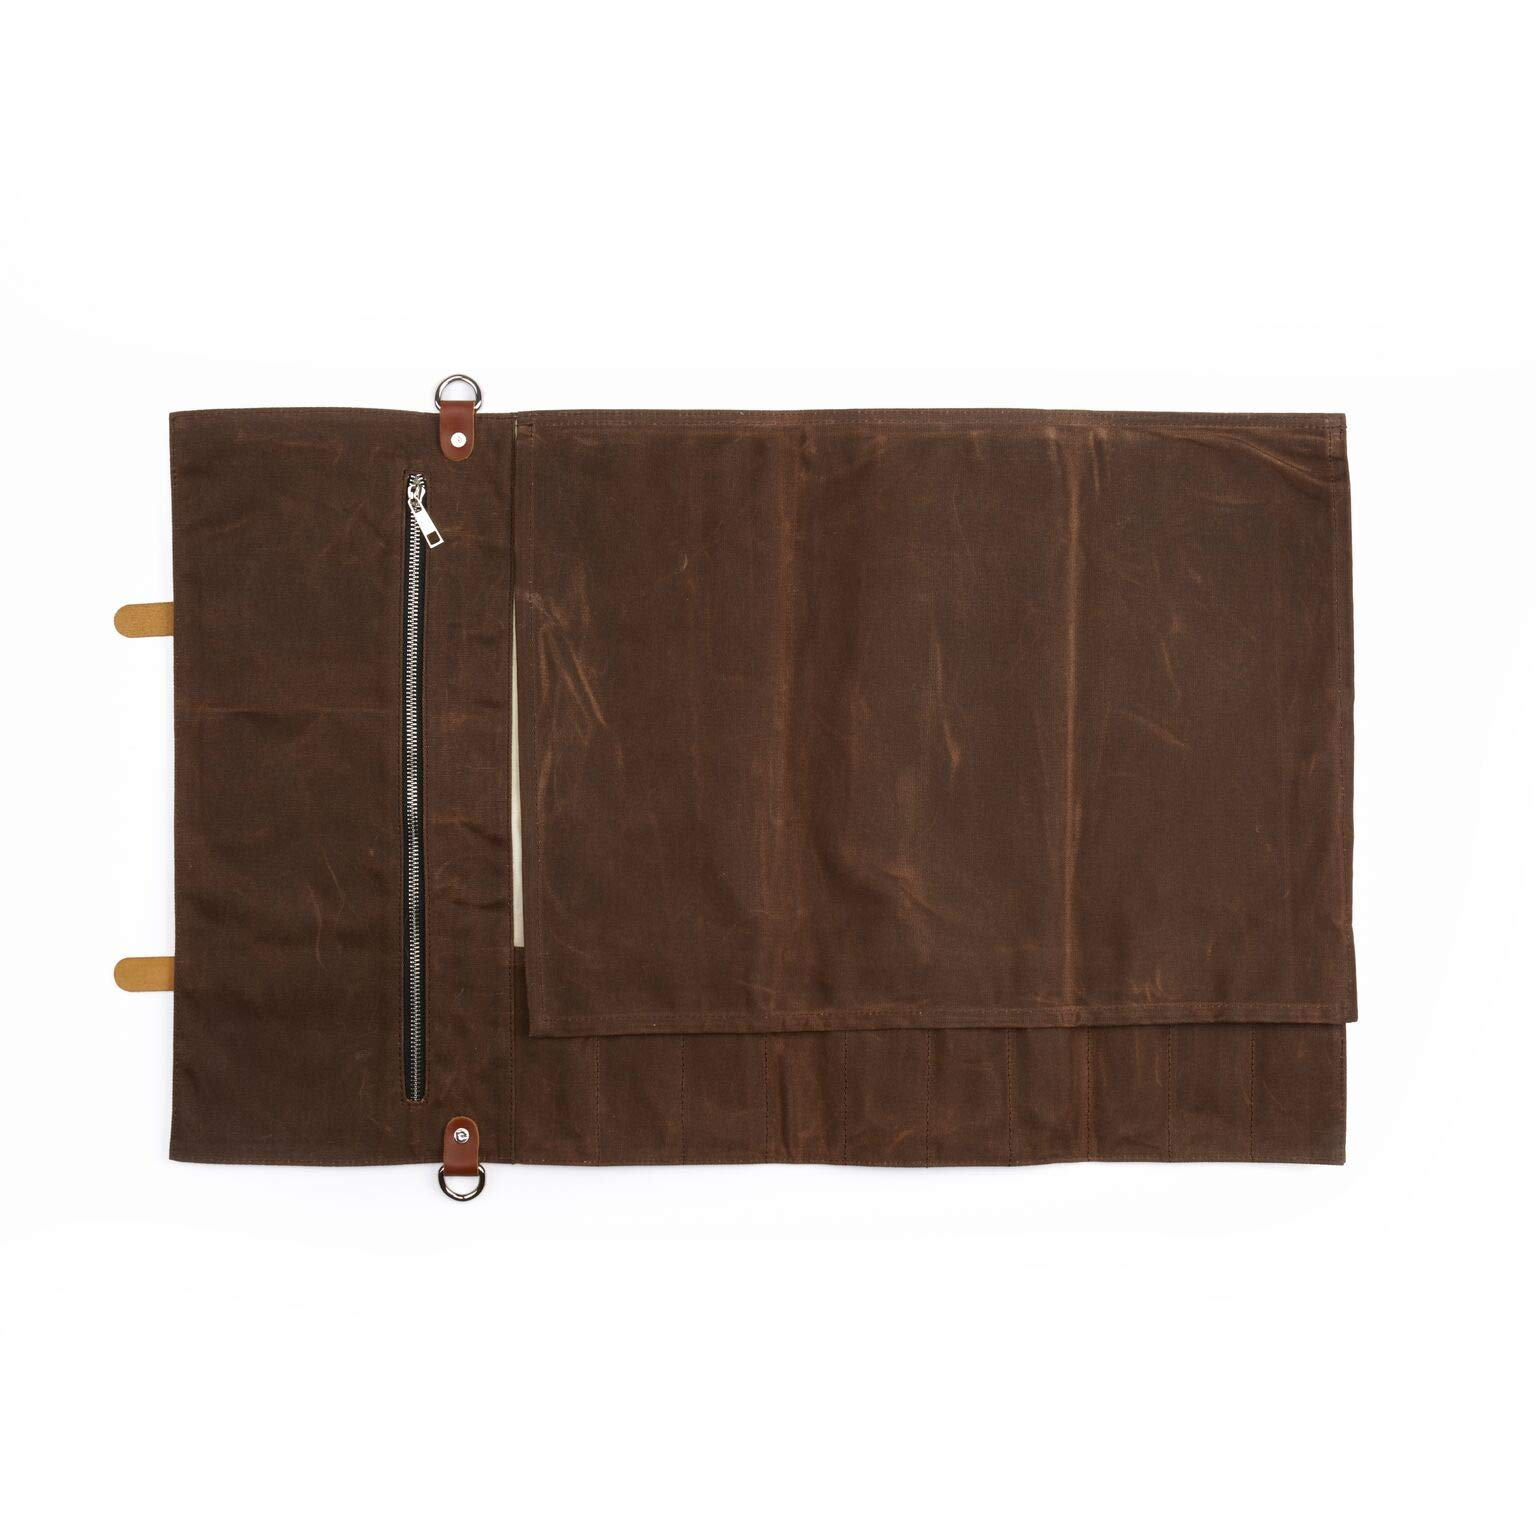 Chef Knife Roll Bag - Handmade Waxed Canvas and Leather Knife Bag Stores 10 Knives + Zipper Pocket and Shoulder Strap (Dark Brown) by Becken Leather Co. (Image #3)